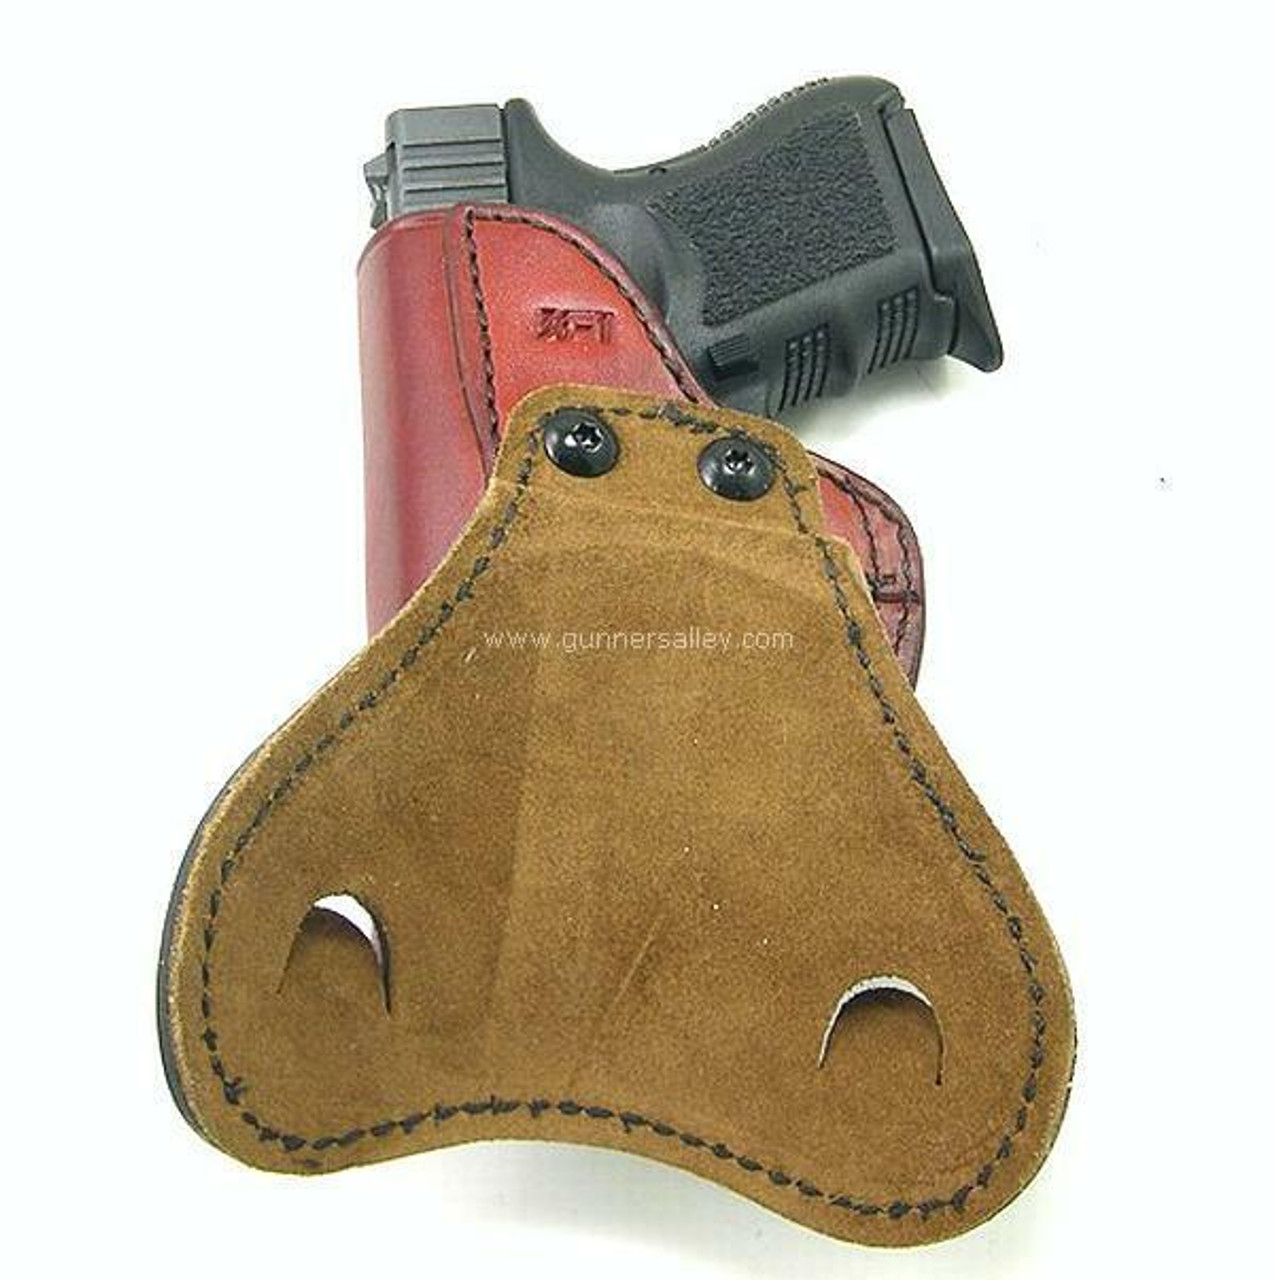 Saddle Brown - Rear View - Shown with a Glock 19 for Demonstration Purposes